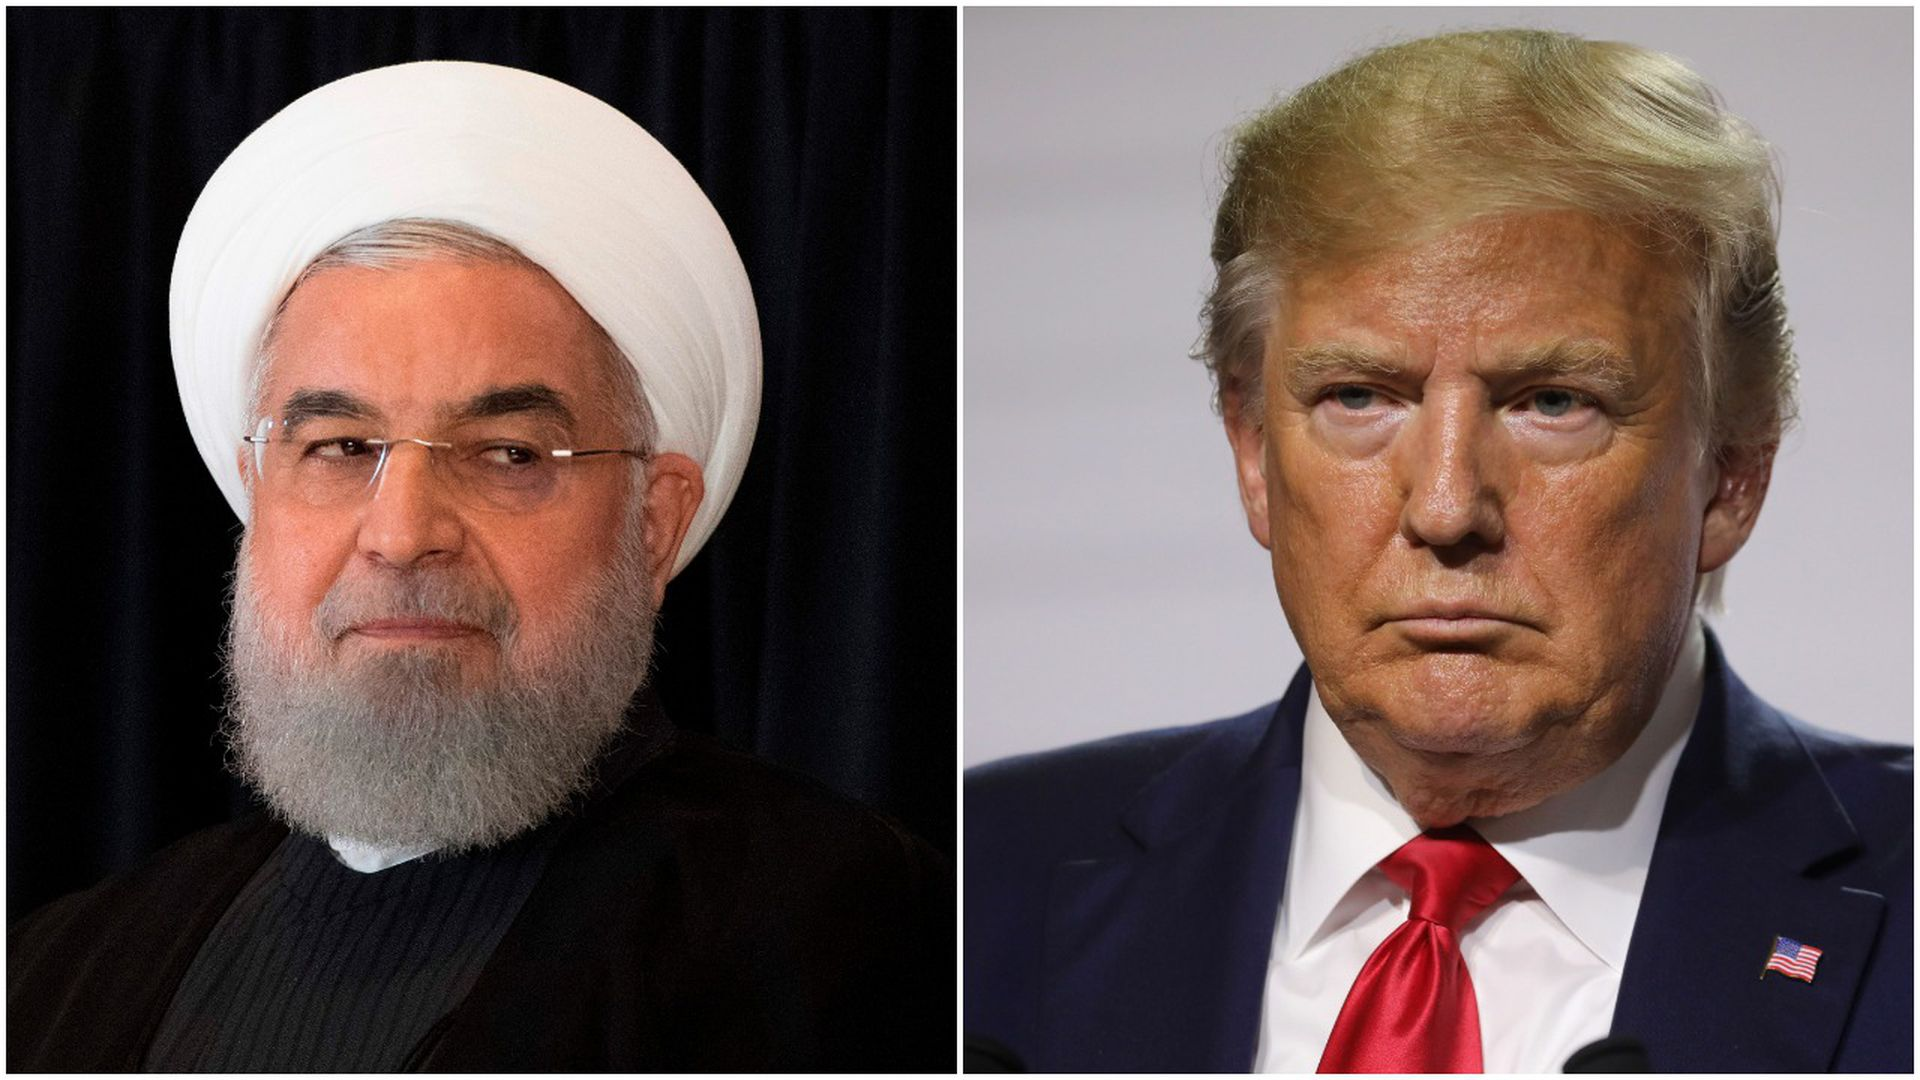 Iranian President Hassan Rouhani and U.S. President Donald Trump